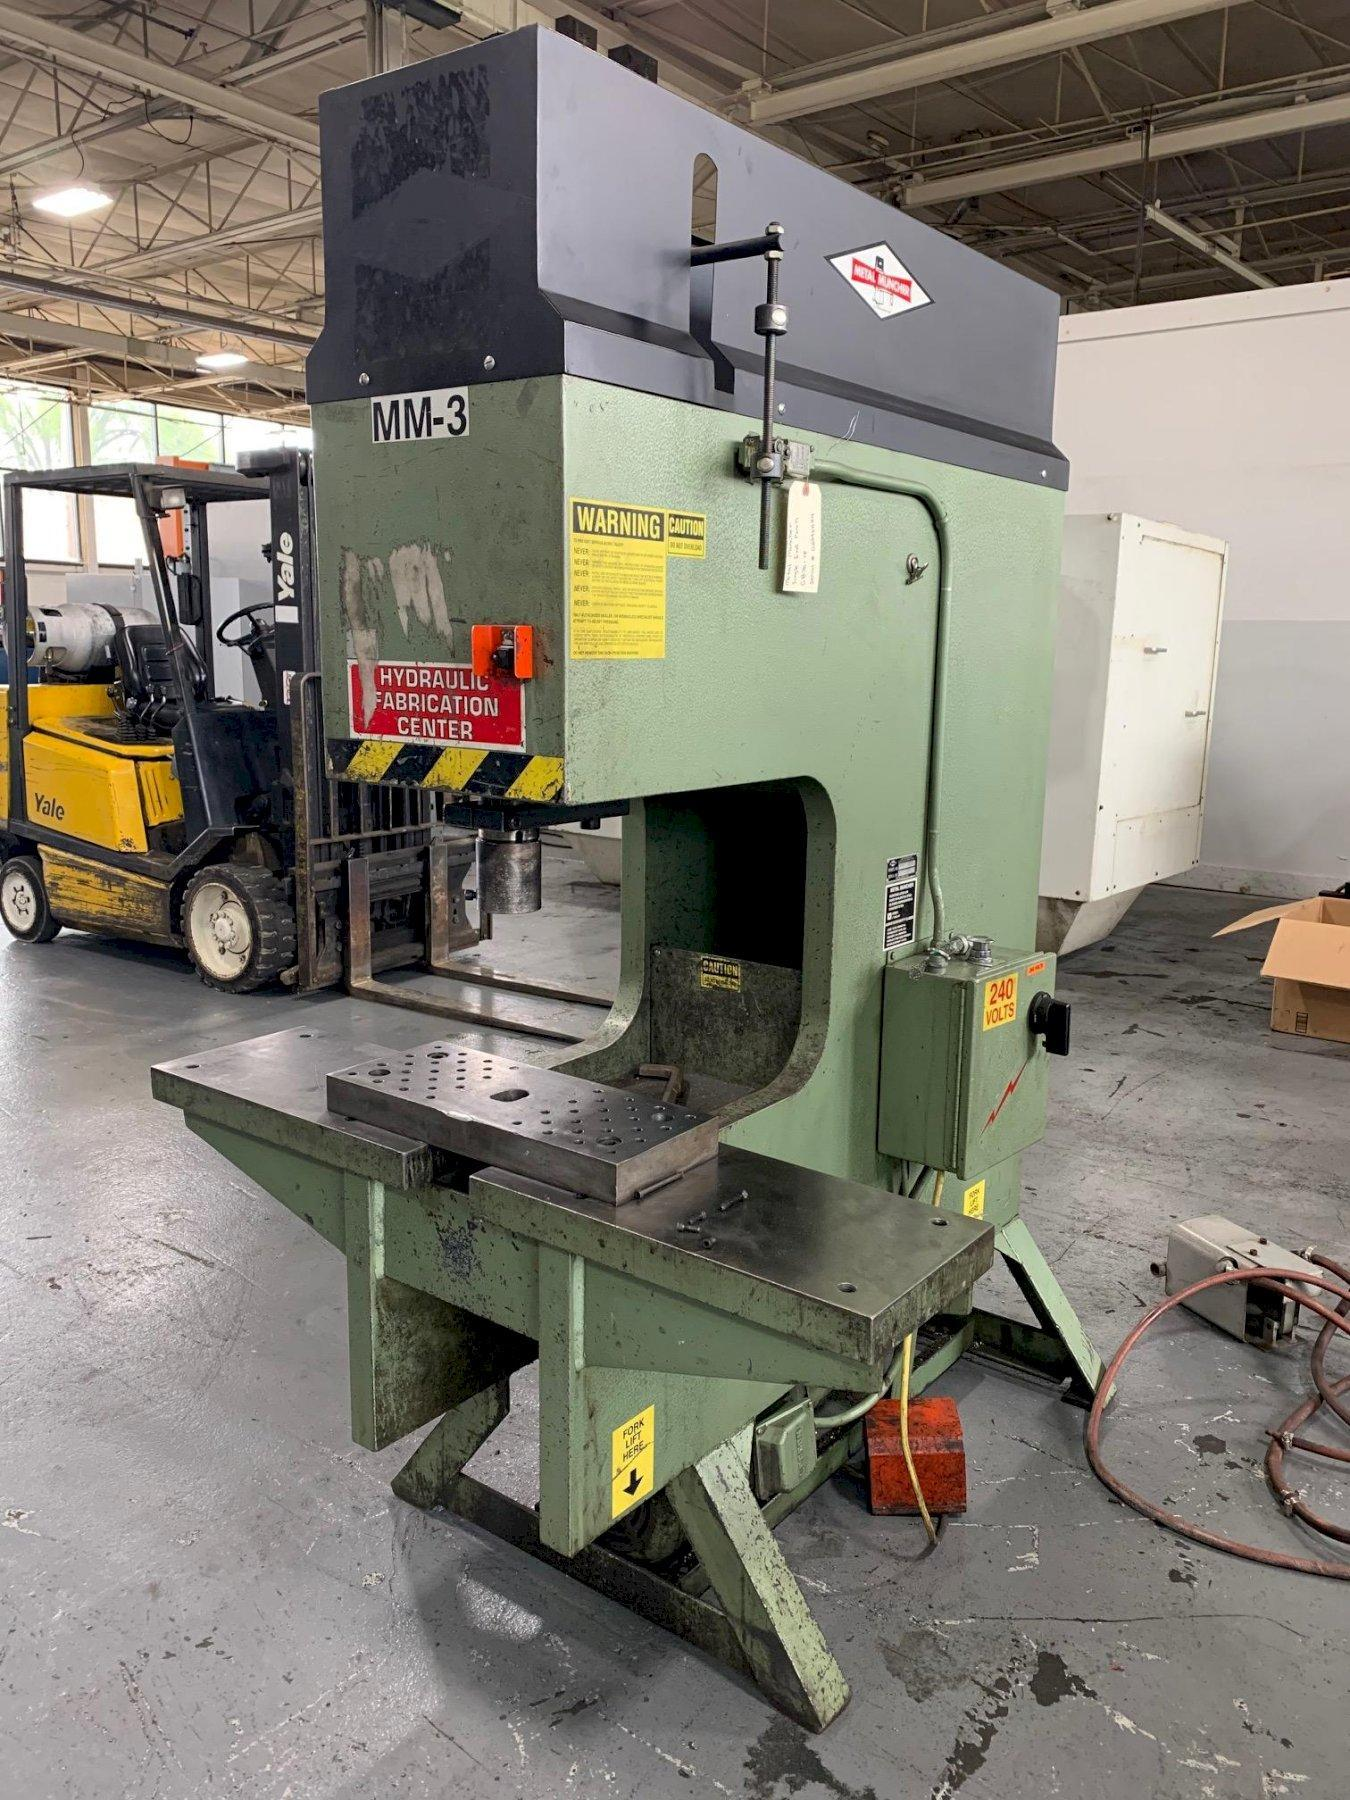 USED METAL MUNCHER SINGLE END 70 TON HYDRAULIC PUNCH MODEL GB 70-18, Stock# 10699 , Year 1999